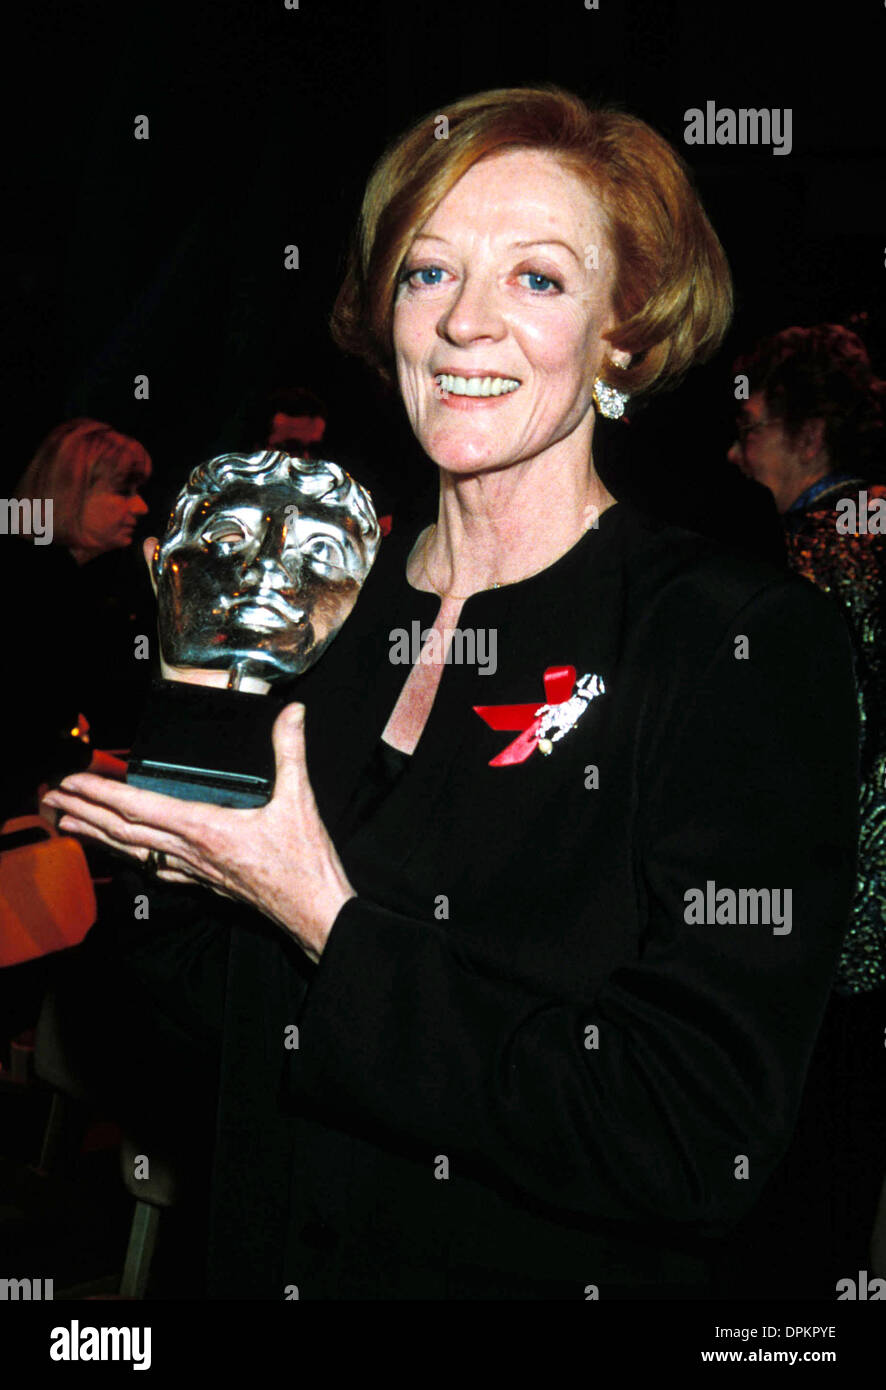 Dec. 28, 2005 - A10525.MAGGIE SMITH 1993 BAFTA AWARDS. DAVE BENETT-   GETTY IMAGES.MAGGIESMITHRETRO(Credit Image: © Globe Photos/ZUMAPRESS.com) - Stock Image